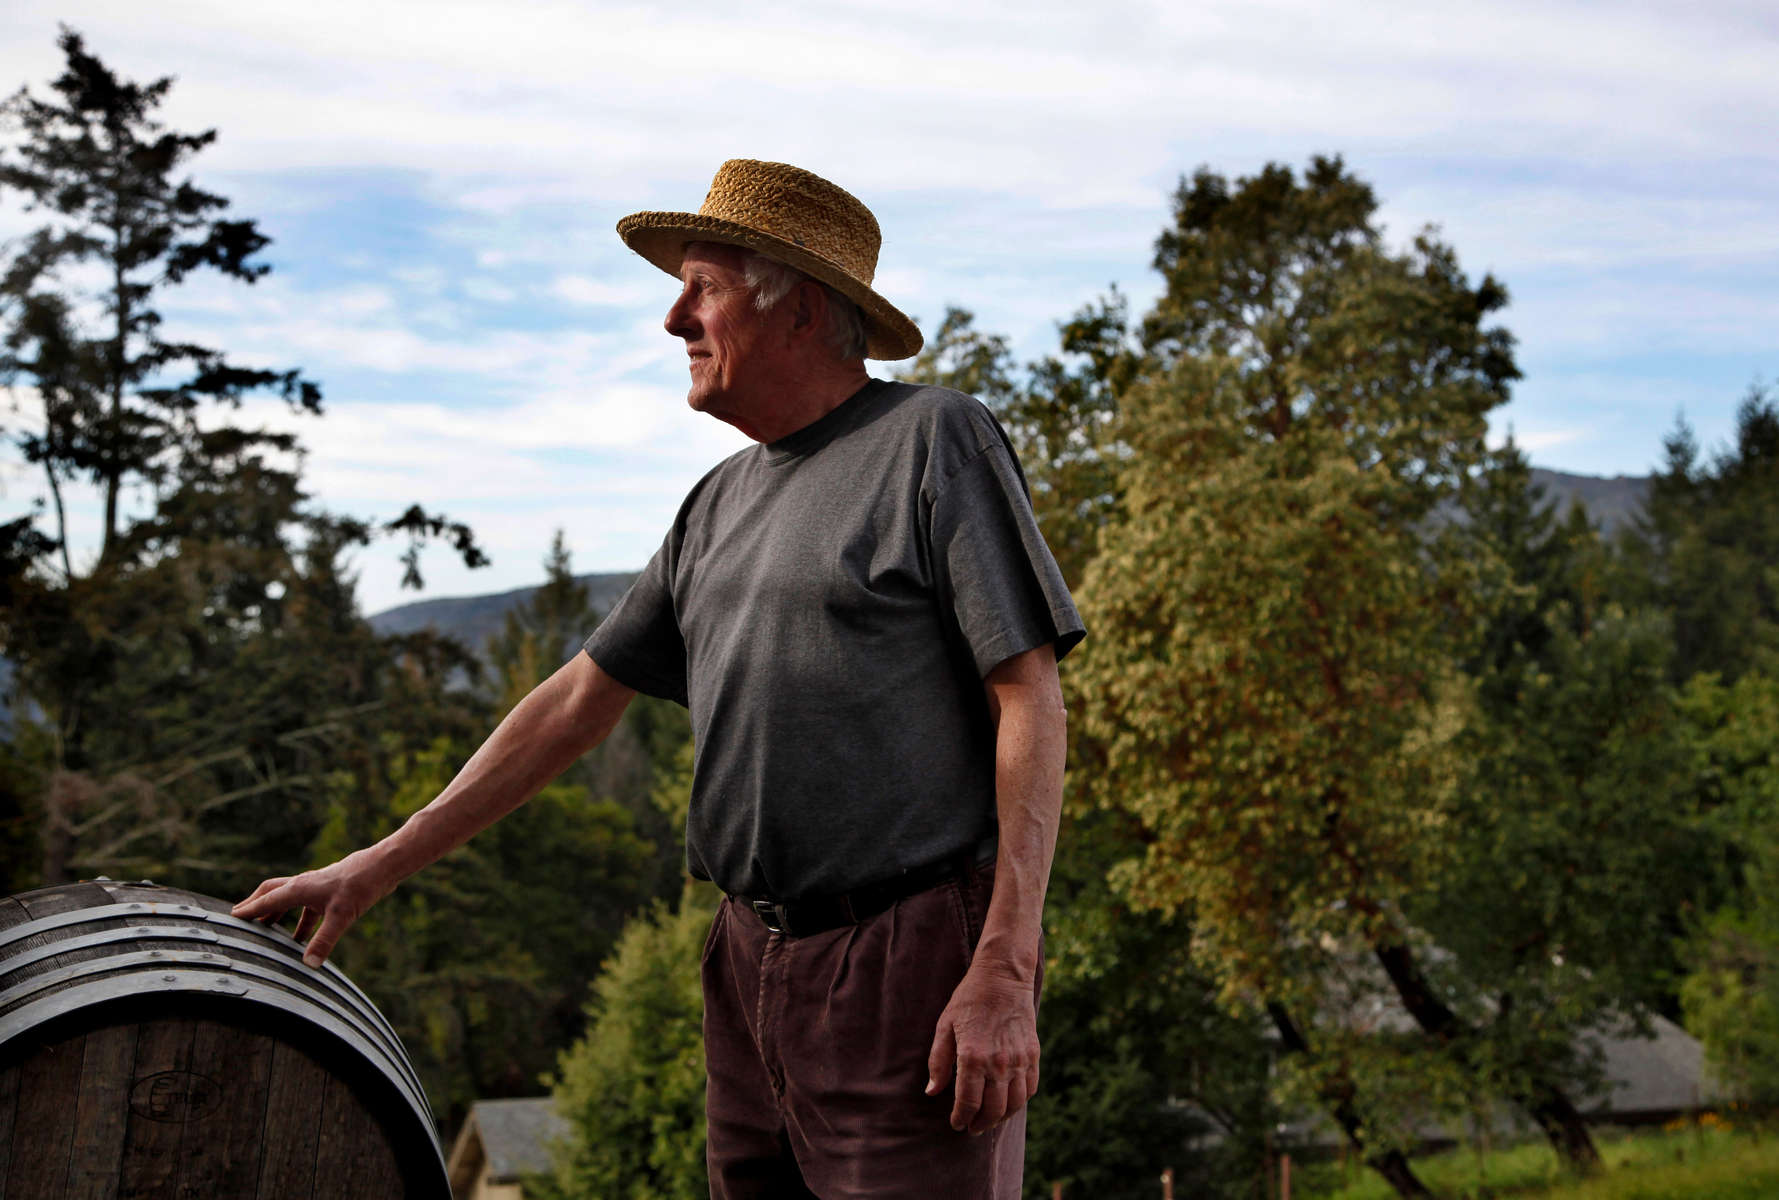 Winemaker Jerold O'Brien, Santa Cruz Mountains, Calif., for the San Francisco Chronicle